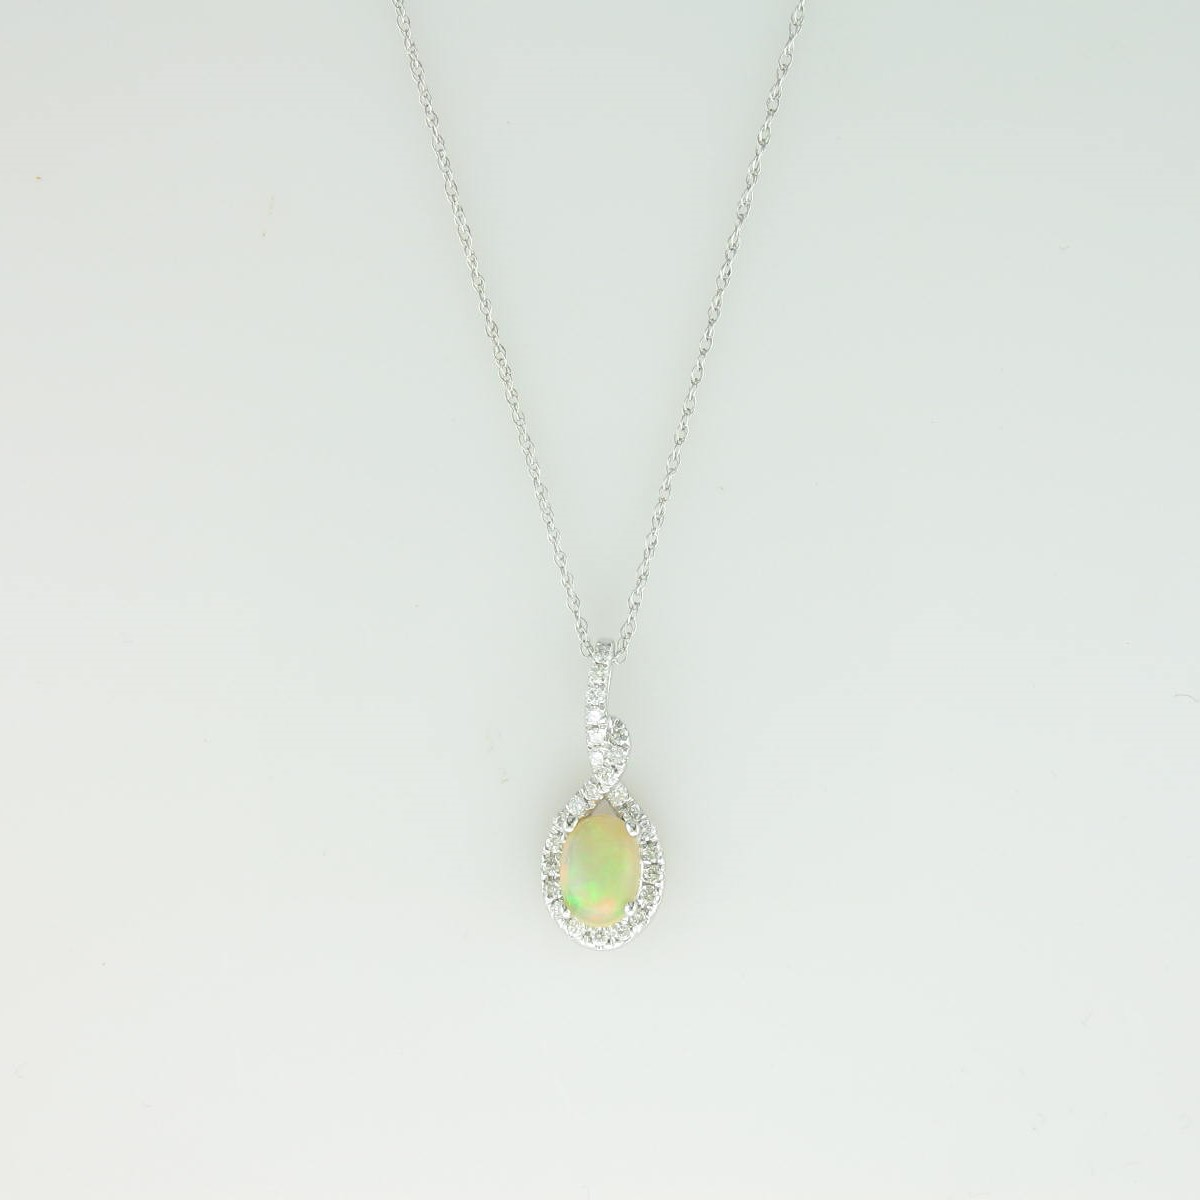 0.60ct Ethiopian Opal & Diamond Necklace set in 14k White Gold